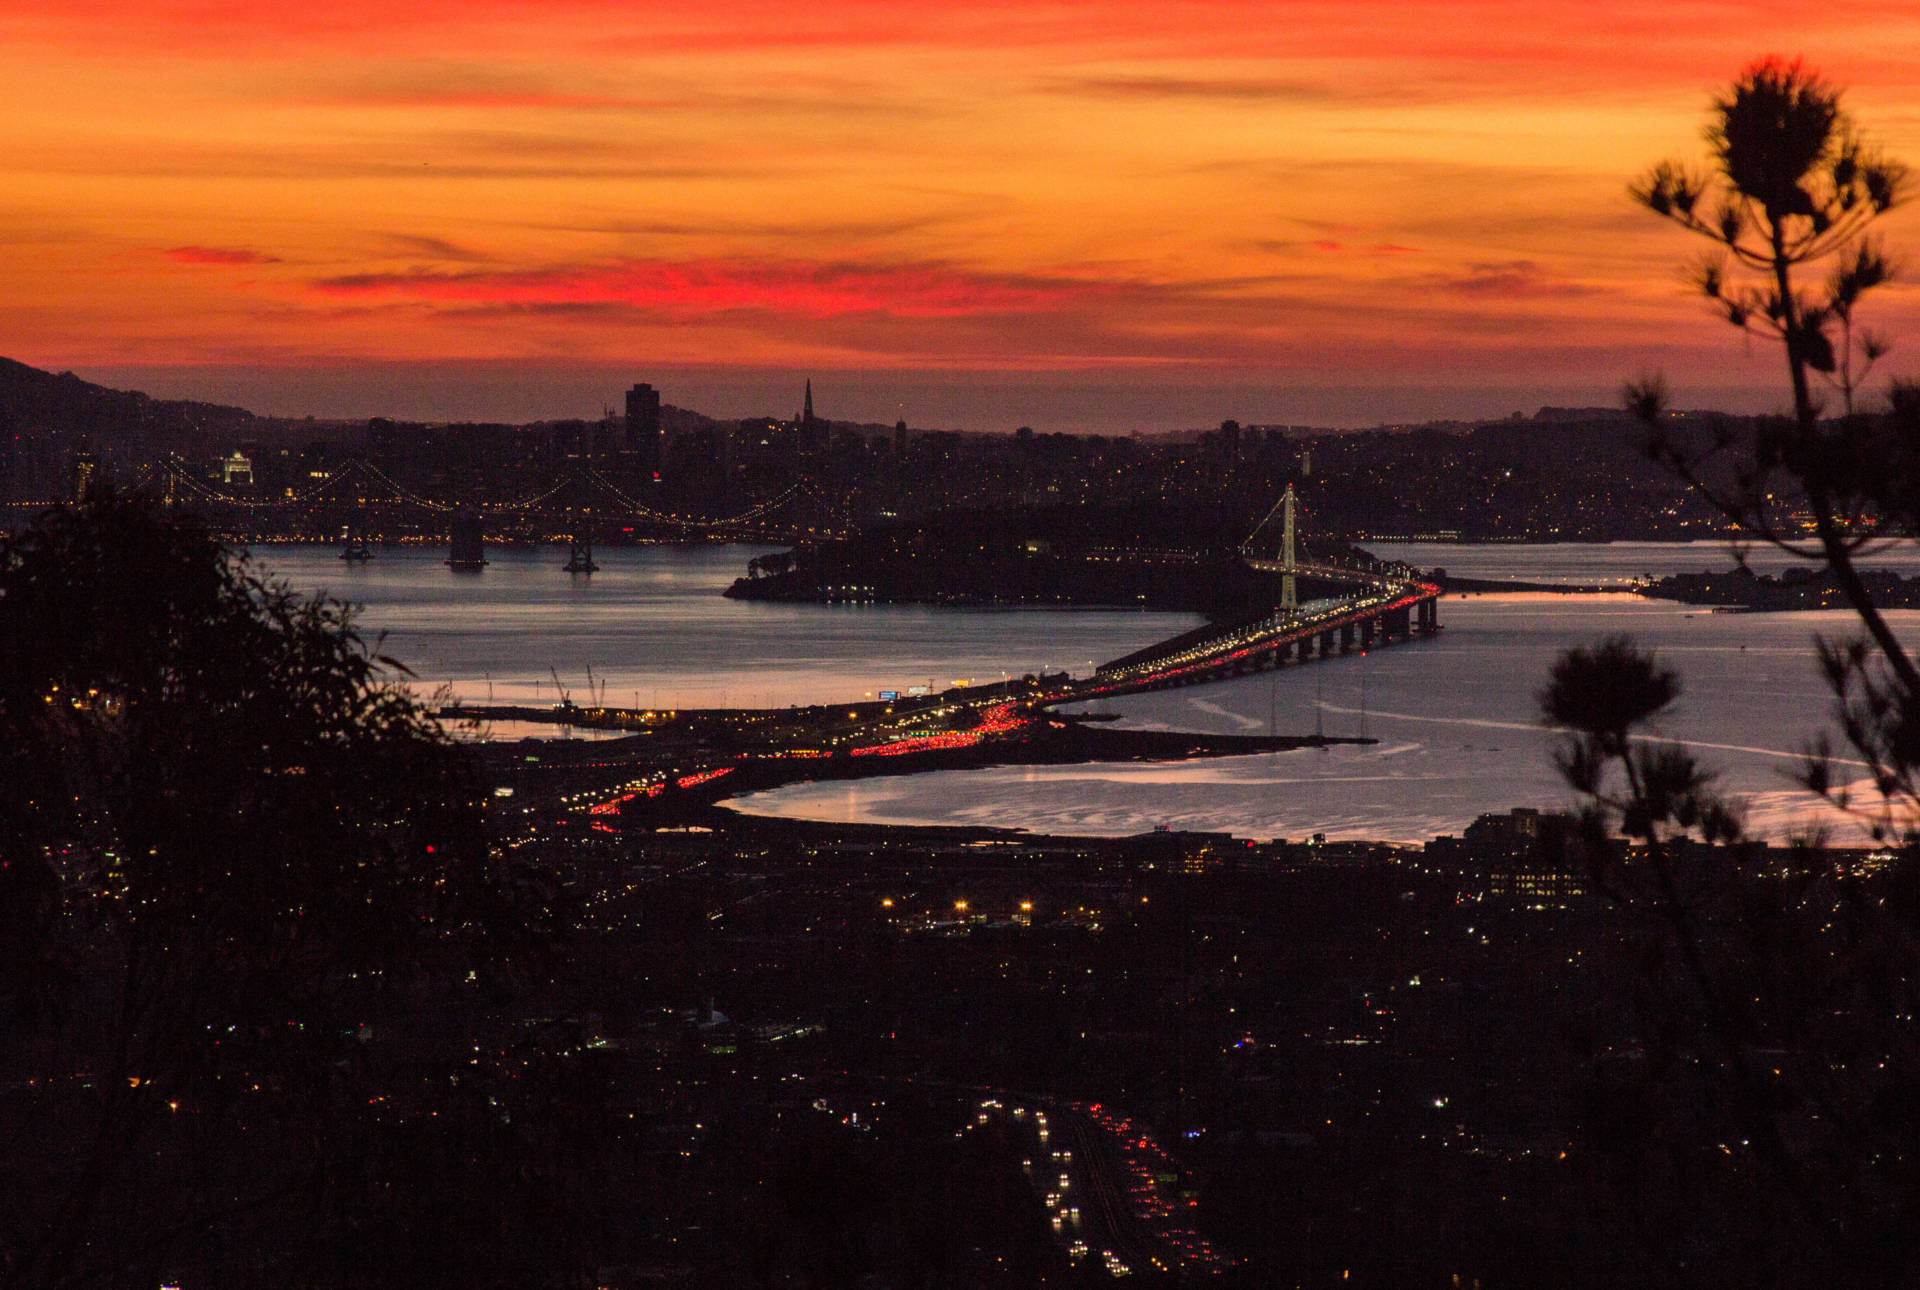 A 2015 (pre-Salesforce Tower) view from Grizzly Peak Boulevard in the Oakland Hills featuring jammed Saturday night traffic at the Bay Bridge Toll Plaza.  Dan Brekke/KQED